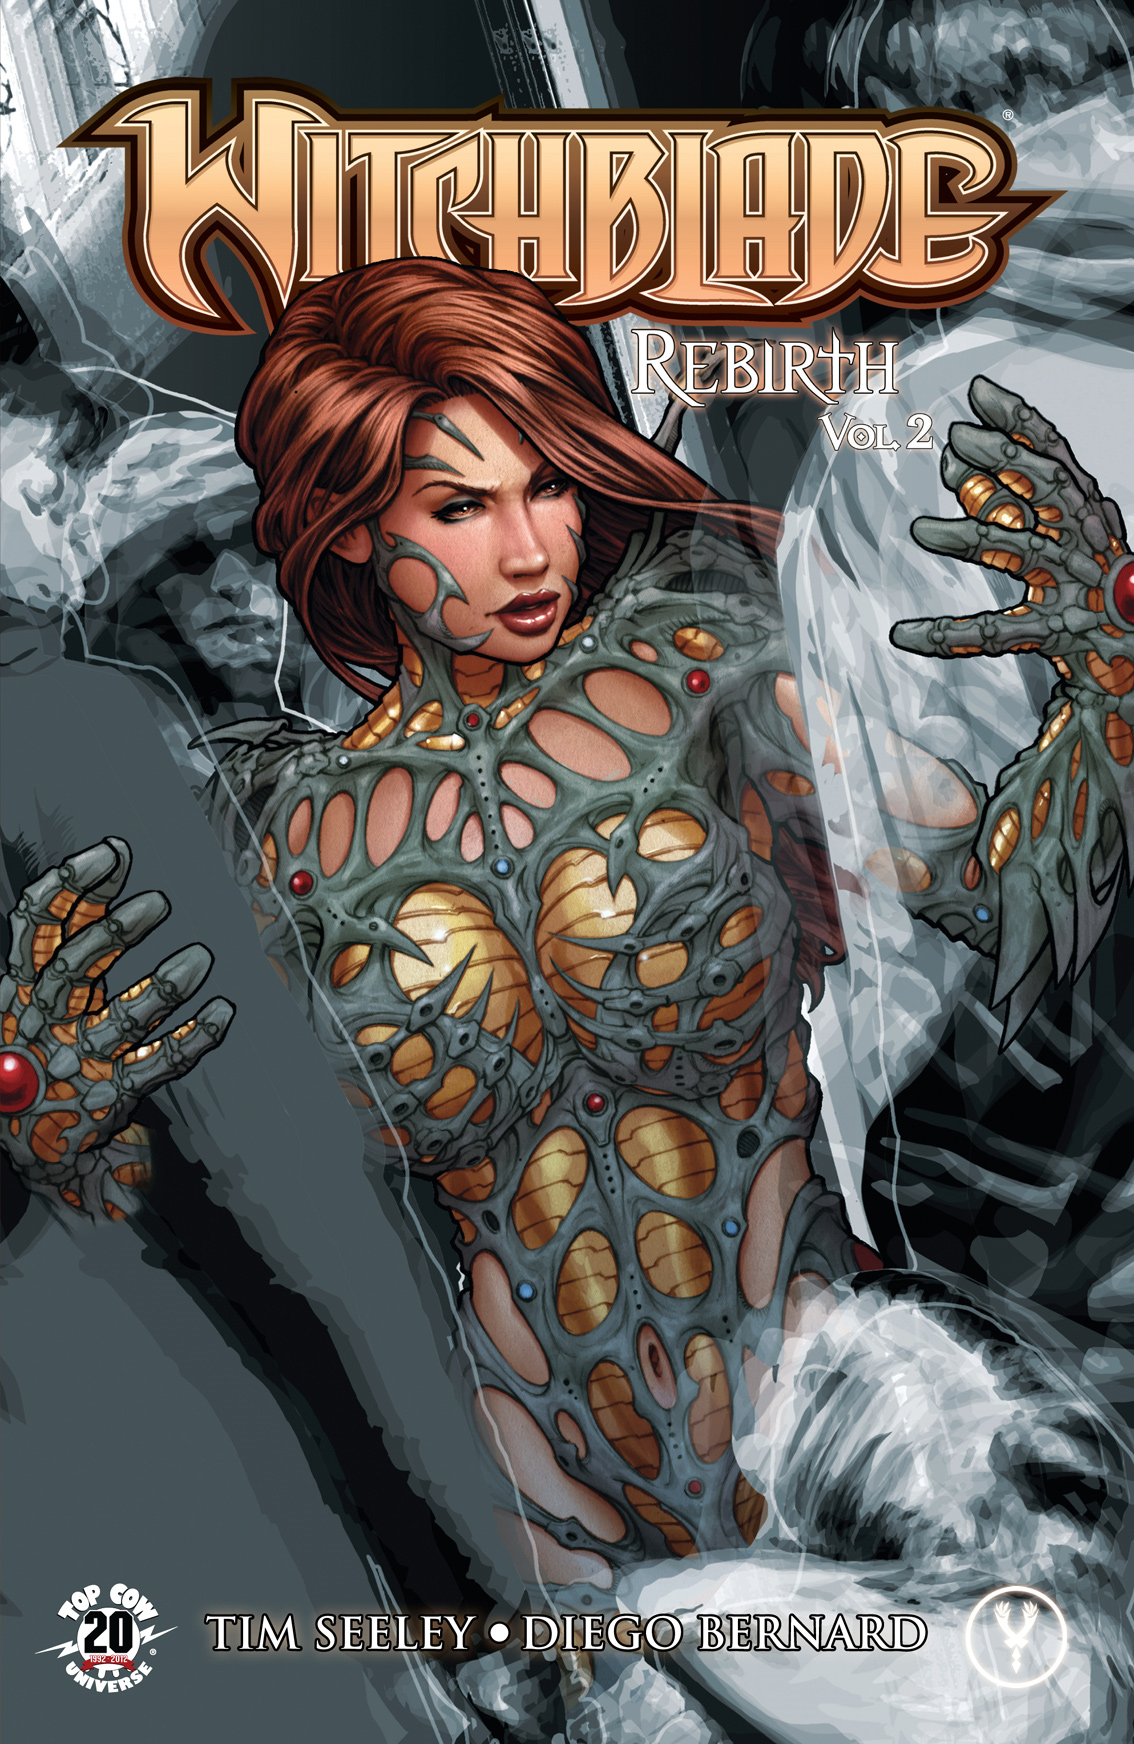 Witchblade Rebirth Volume 2